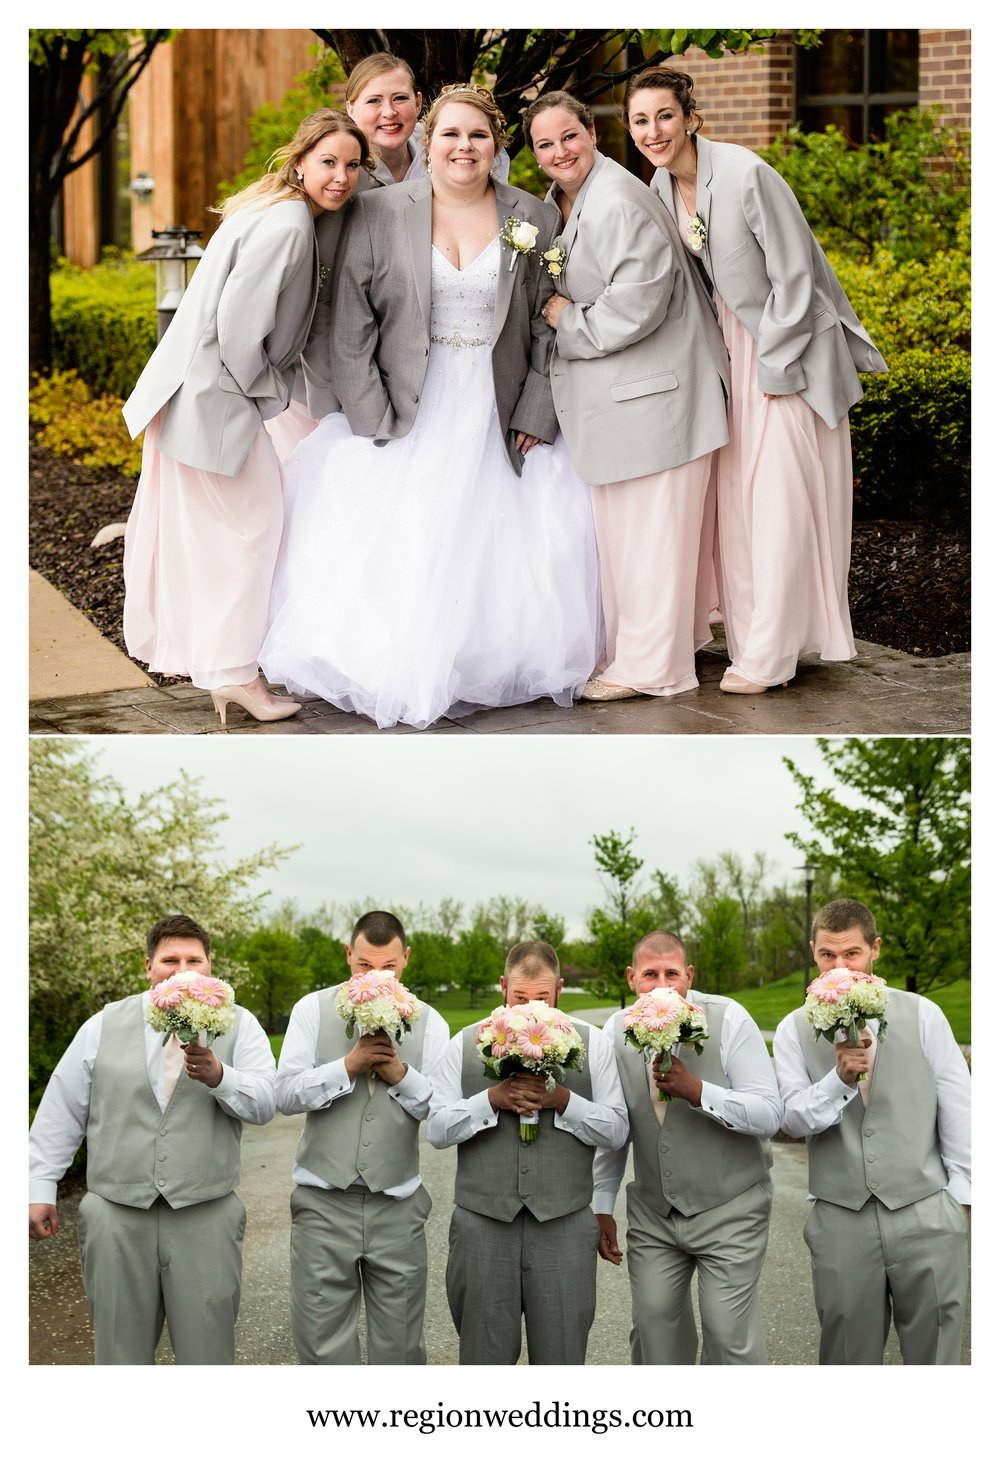 Fun wedding party photos at Centennial Park.